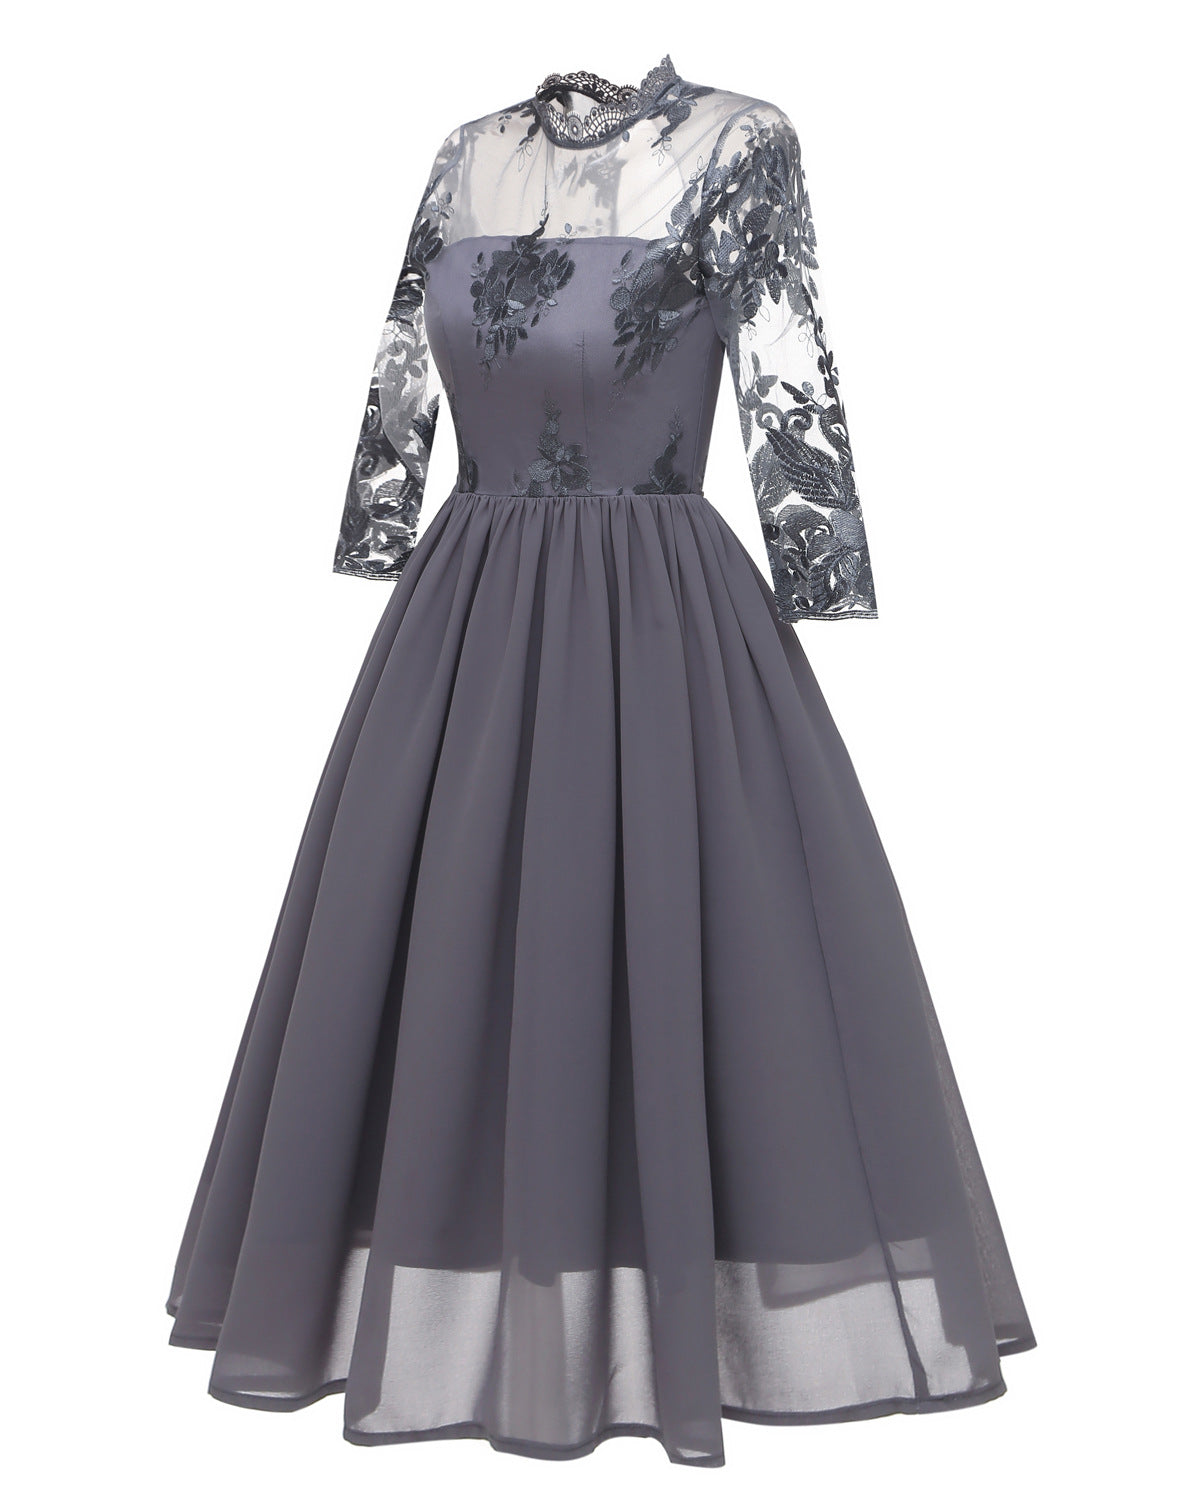 Women Vintage Long 3/4 Sleeve Hollow Laced Bridesmaid Dress with Collar